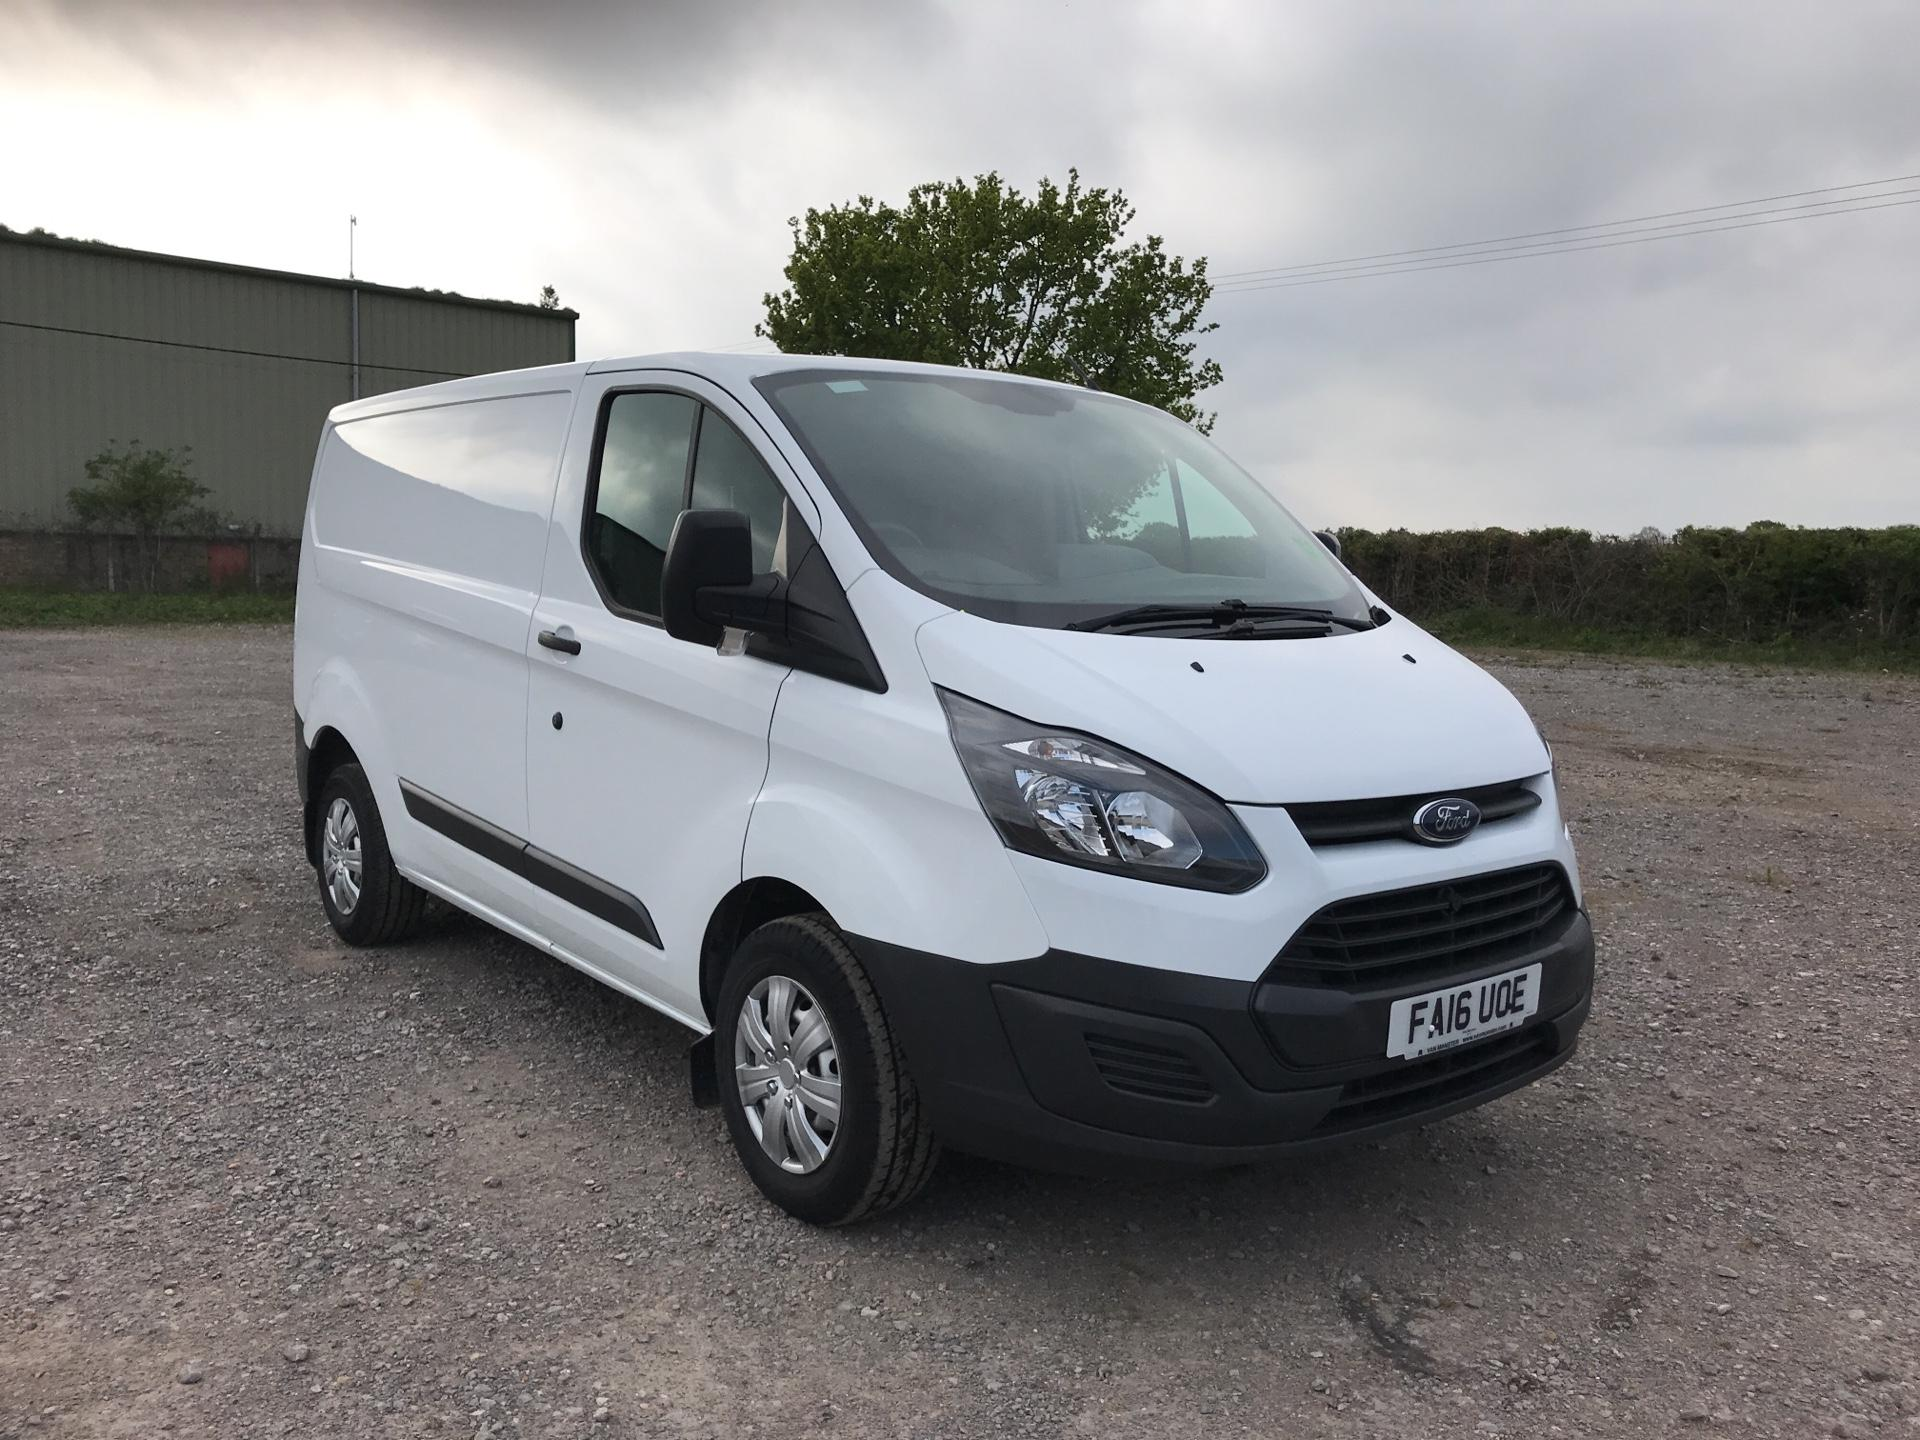 2016 Ford Transit Custom 290 L1 DIESEL FWD 2.2 TDCI 100PS LOW ROOF VAN EURO 5 (FA16UOE) Thumbnail 1